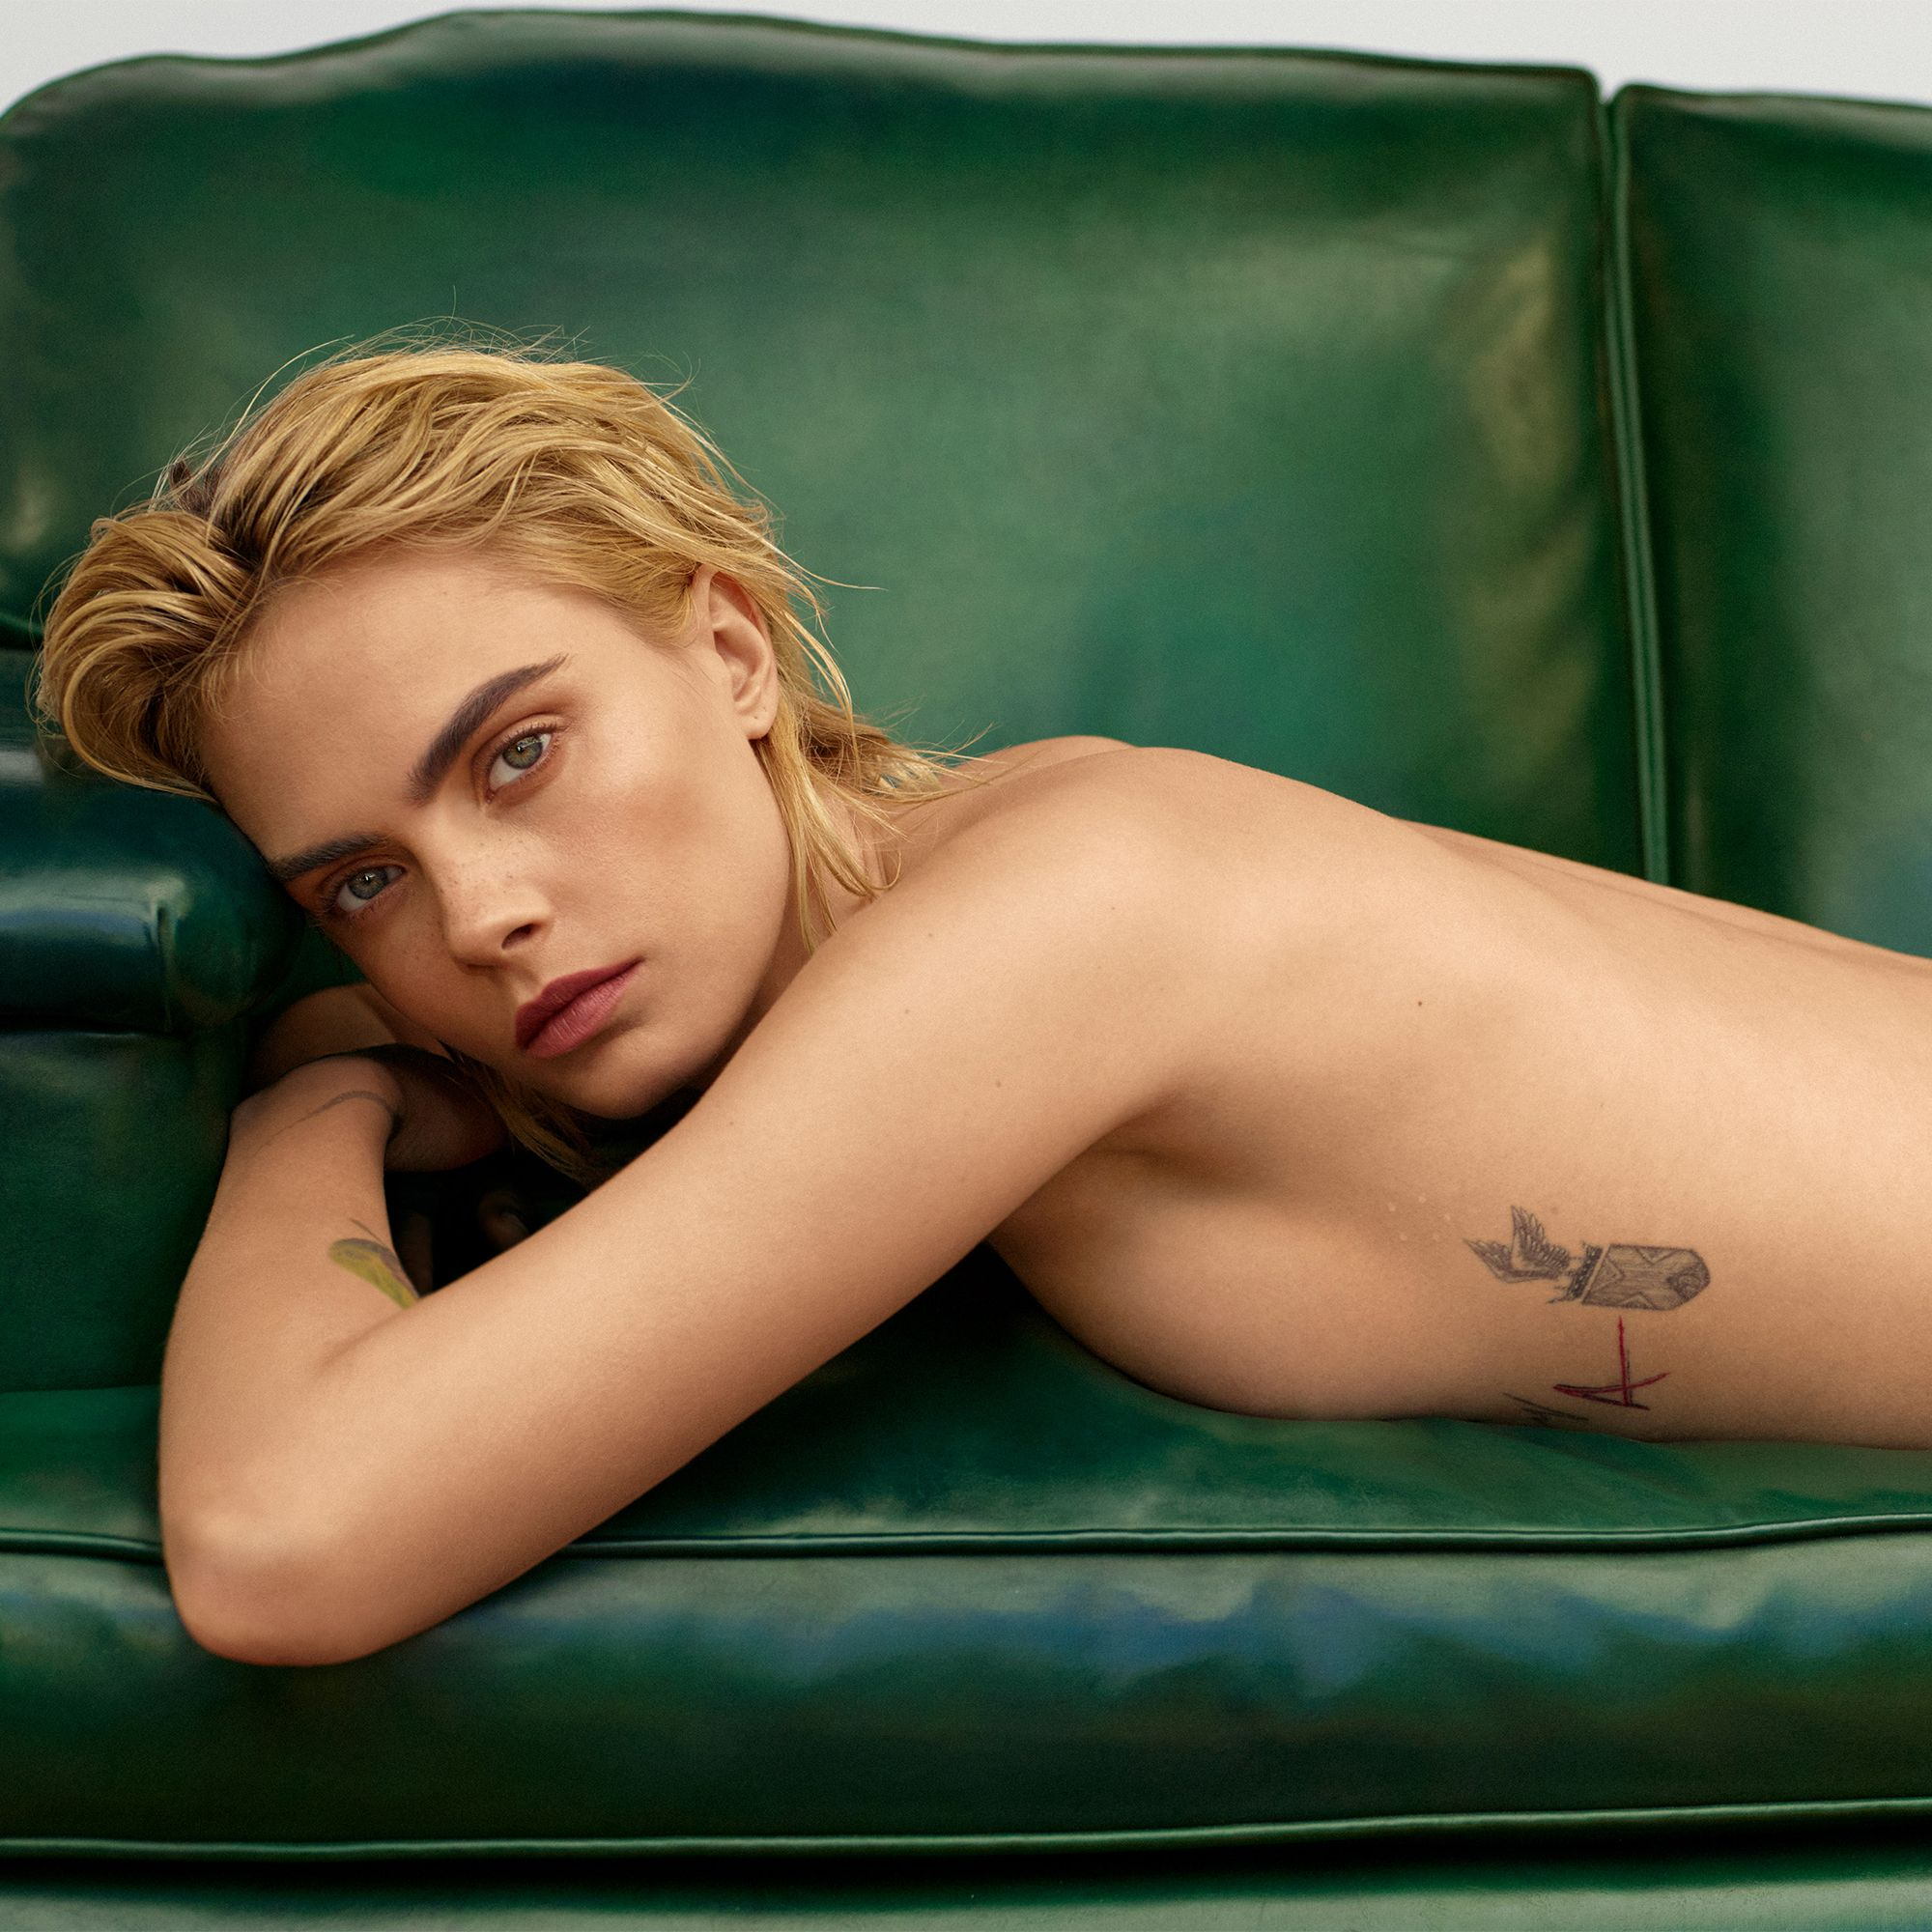 cara nude from posed mtv